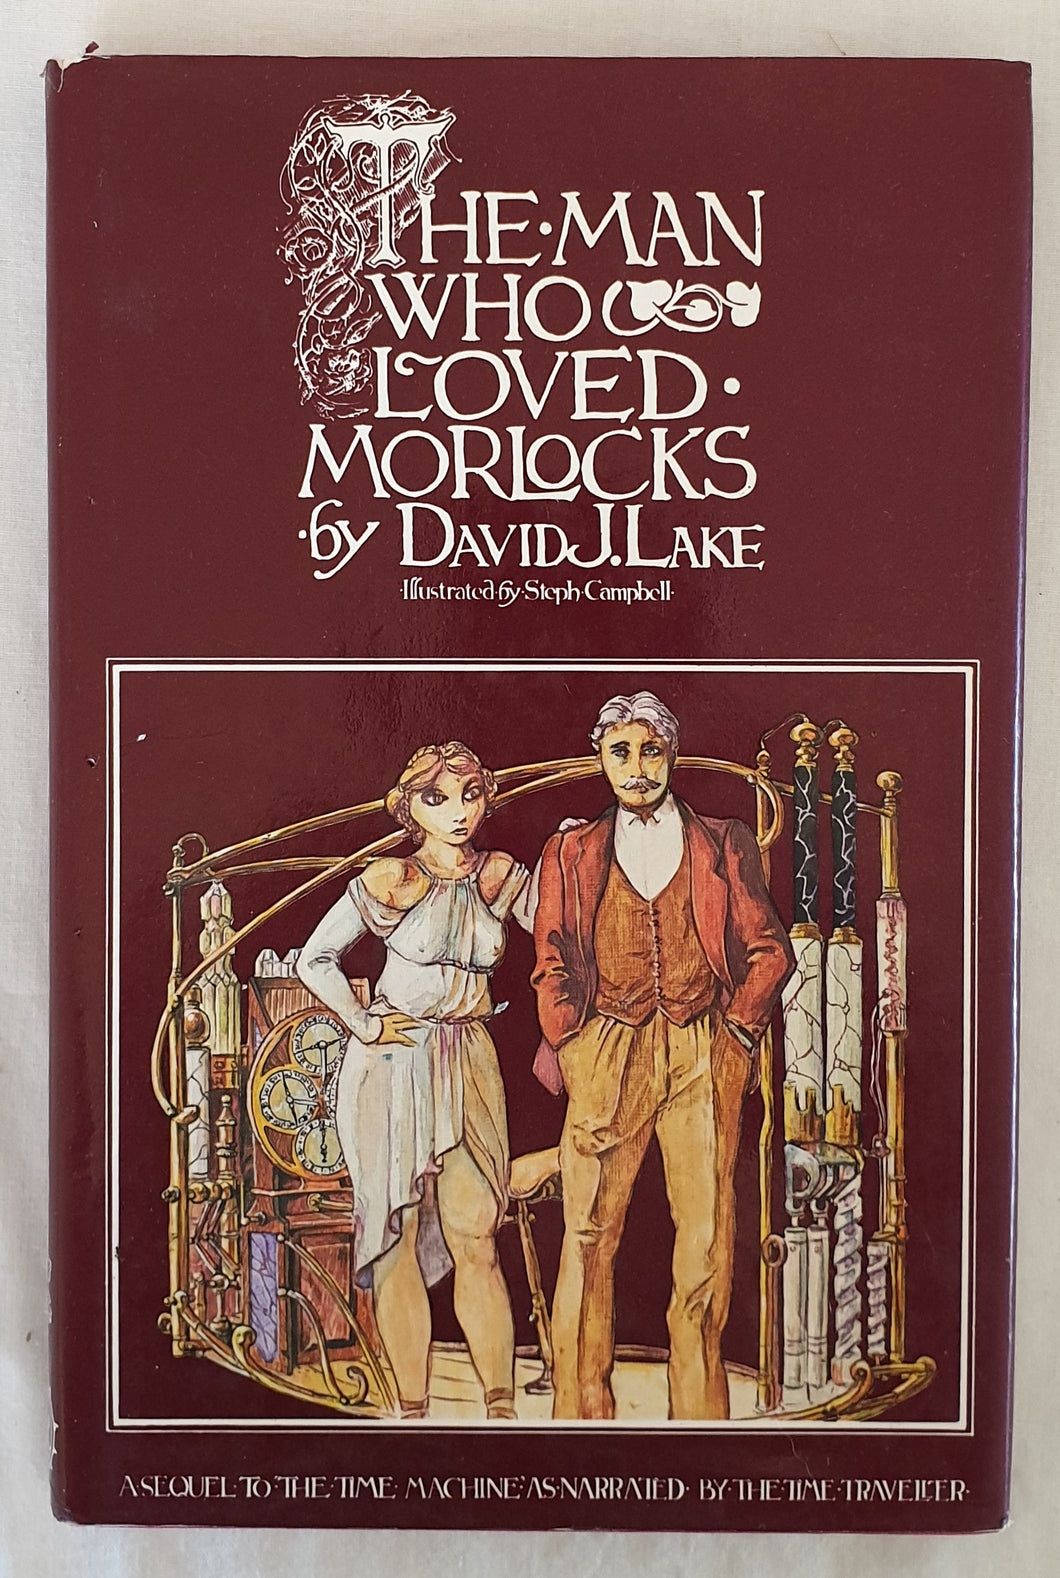 The Man Who Loved Morlocks by David J. Lake